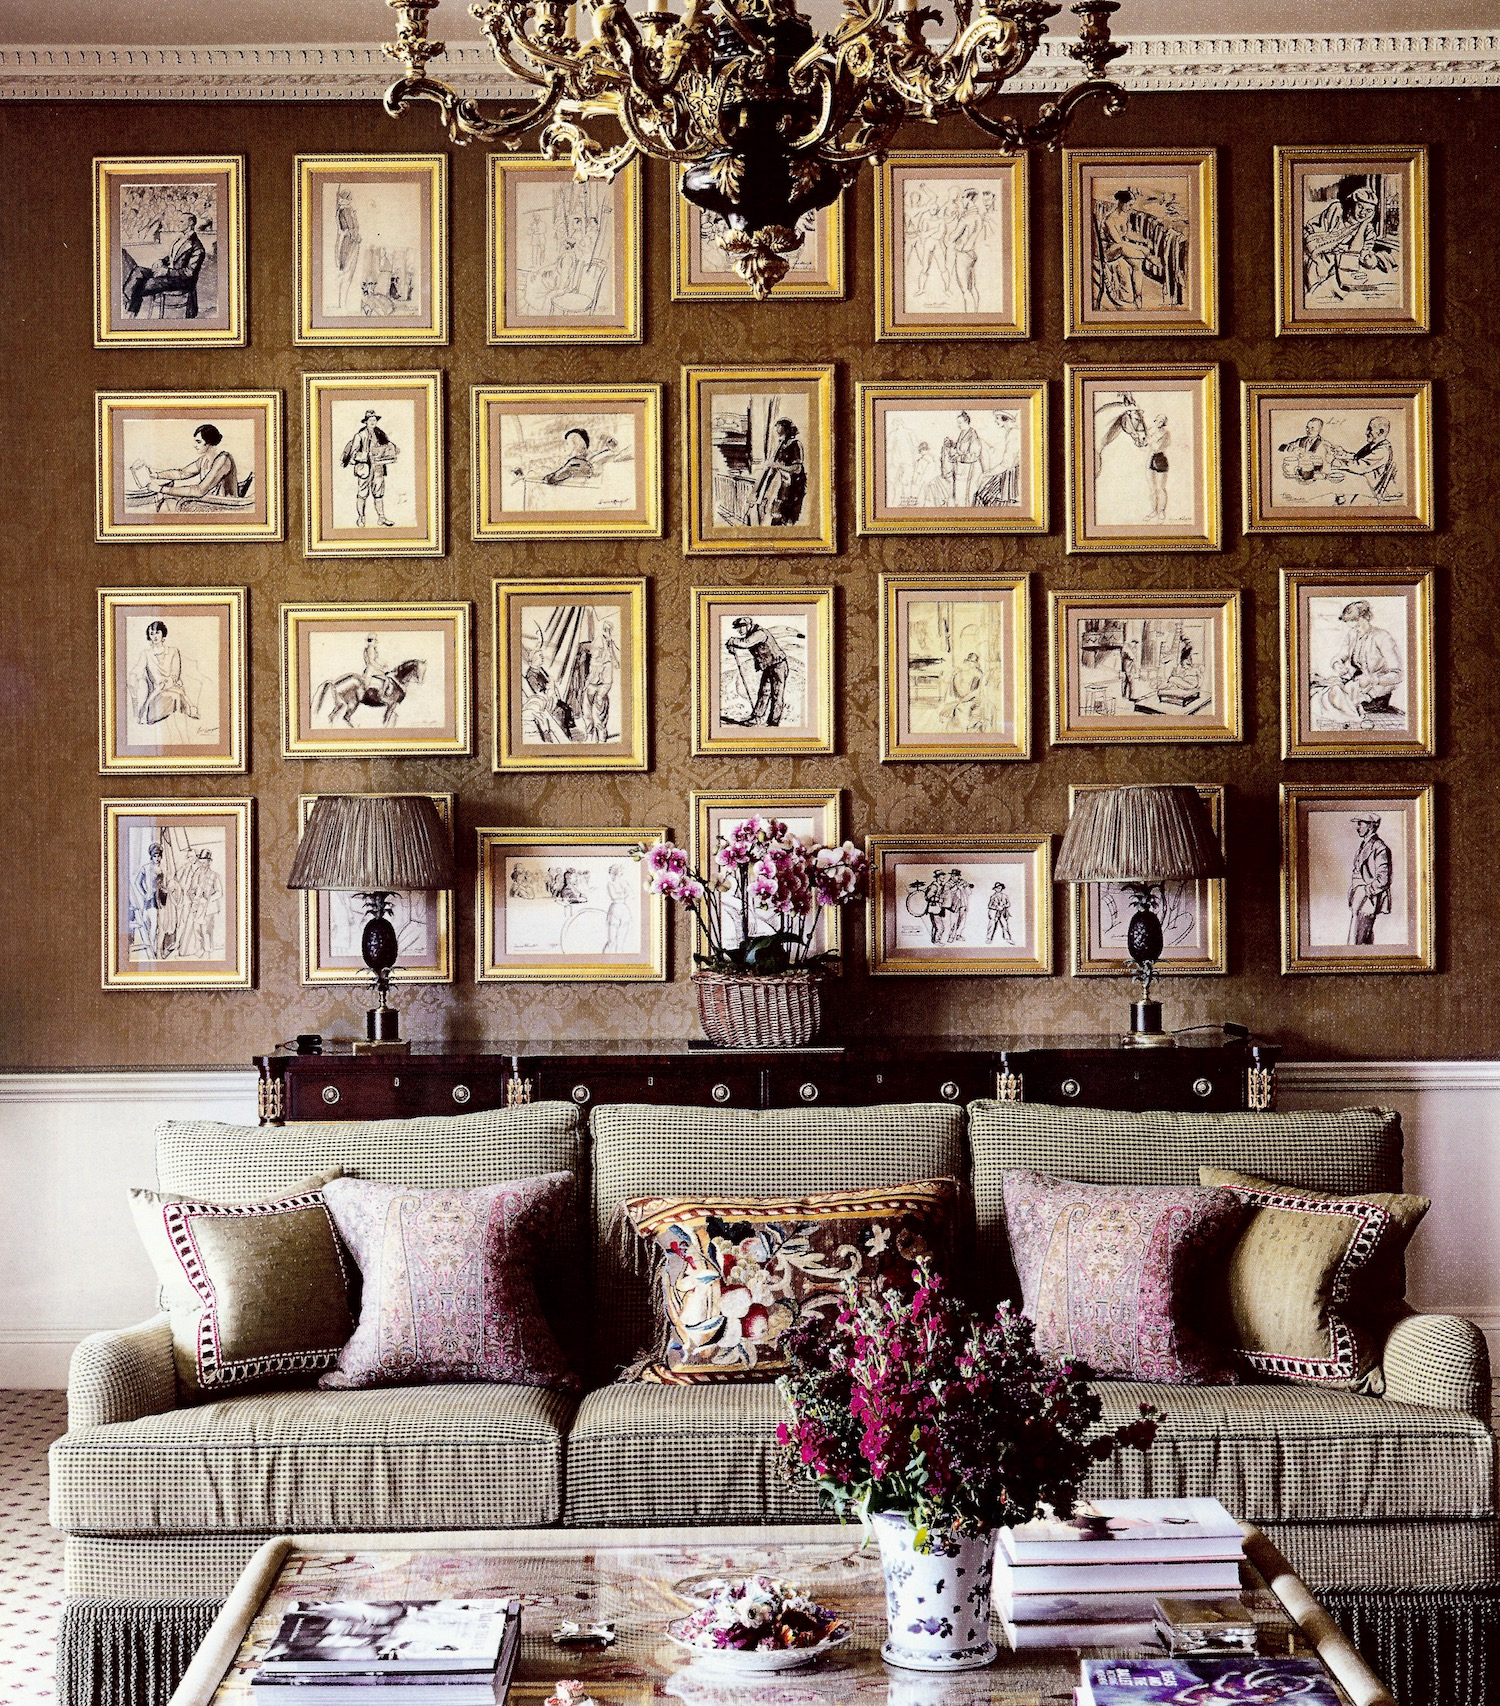 grand picture wall - 28 drawings from a portfolio by Dame Laura Knight as massed on the drawing room wall of Williamstrip, a historic house in the Cotswolds - House & Garden via Atticmag